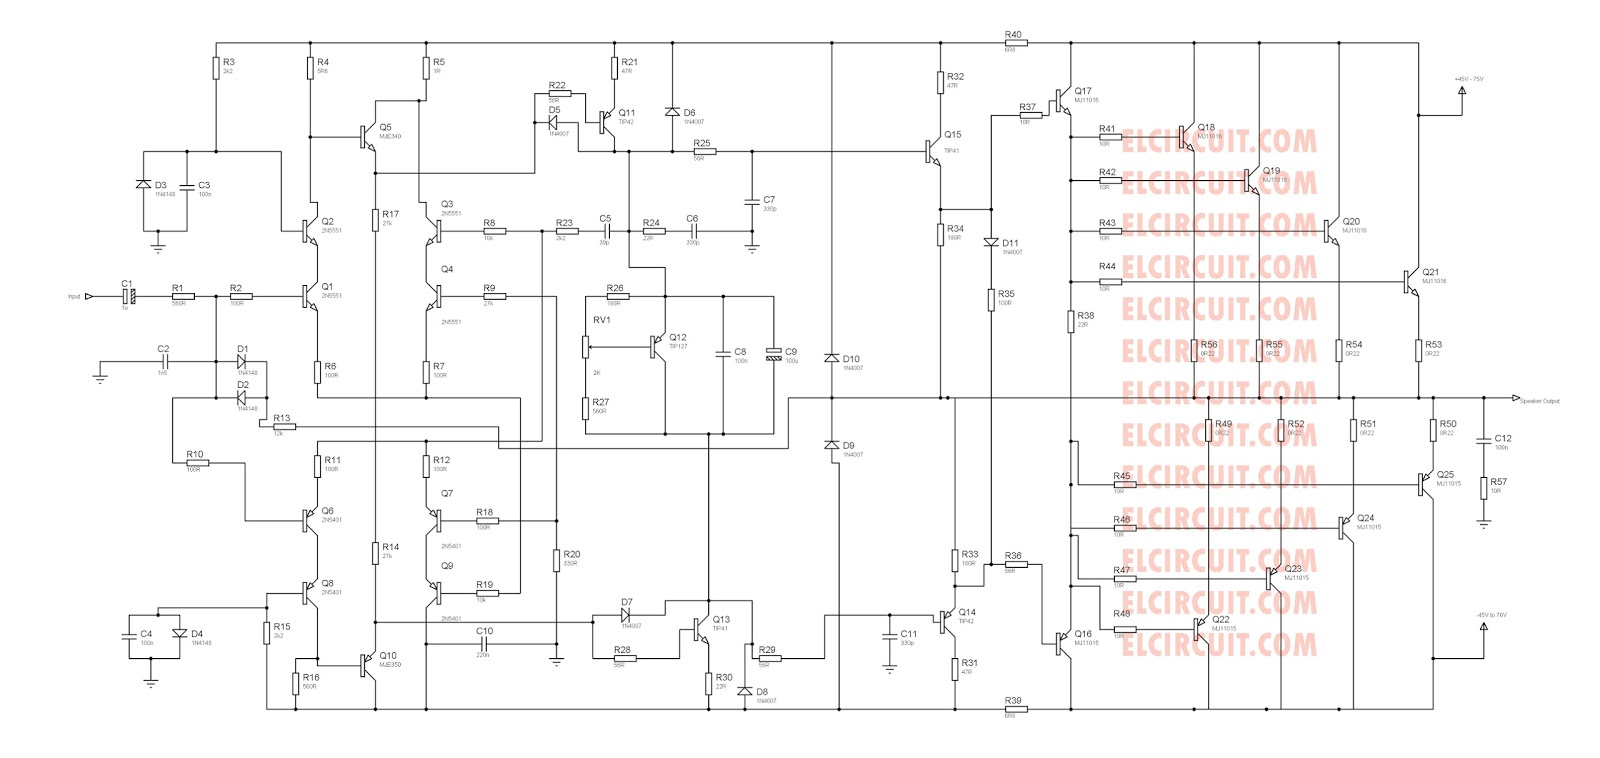 Amplifier Schematic Diagram Trusted Wiring Diagrams Tube Otl Headphone Circuit Amplifiercircuit 2800w High Power Updated Electronic Differential